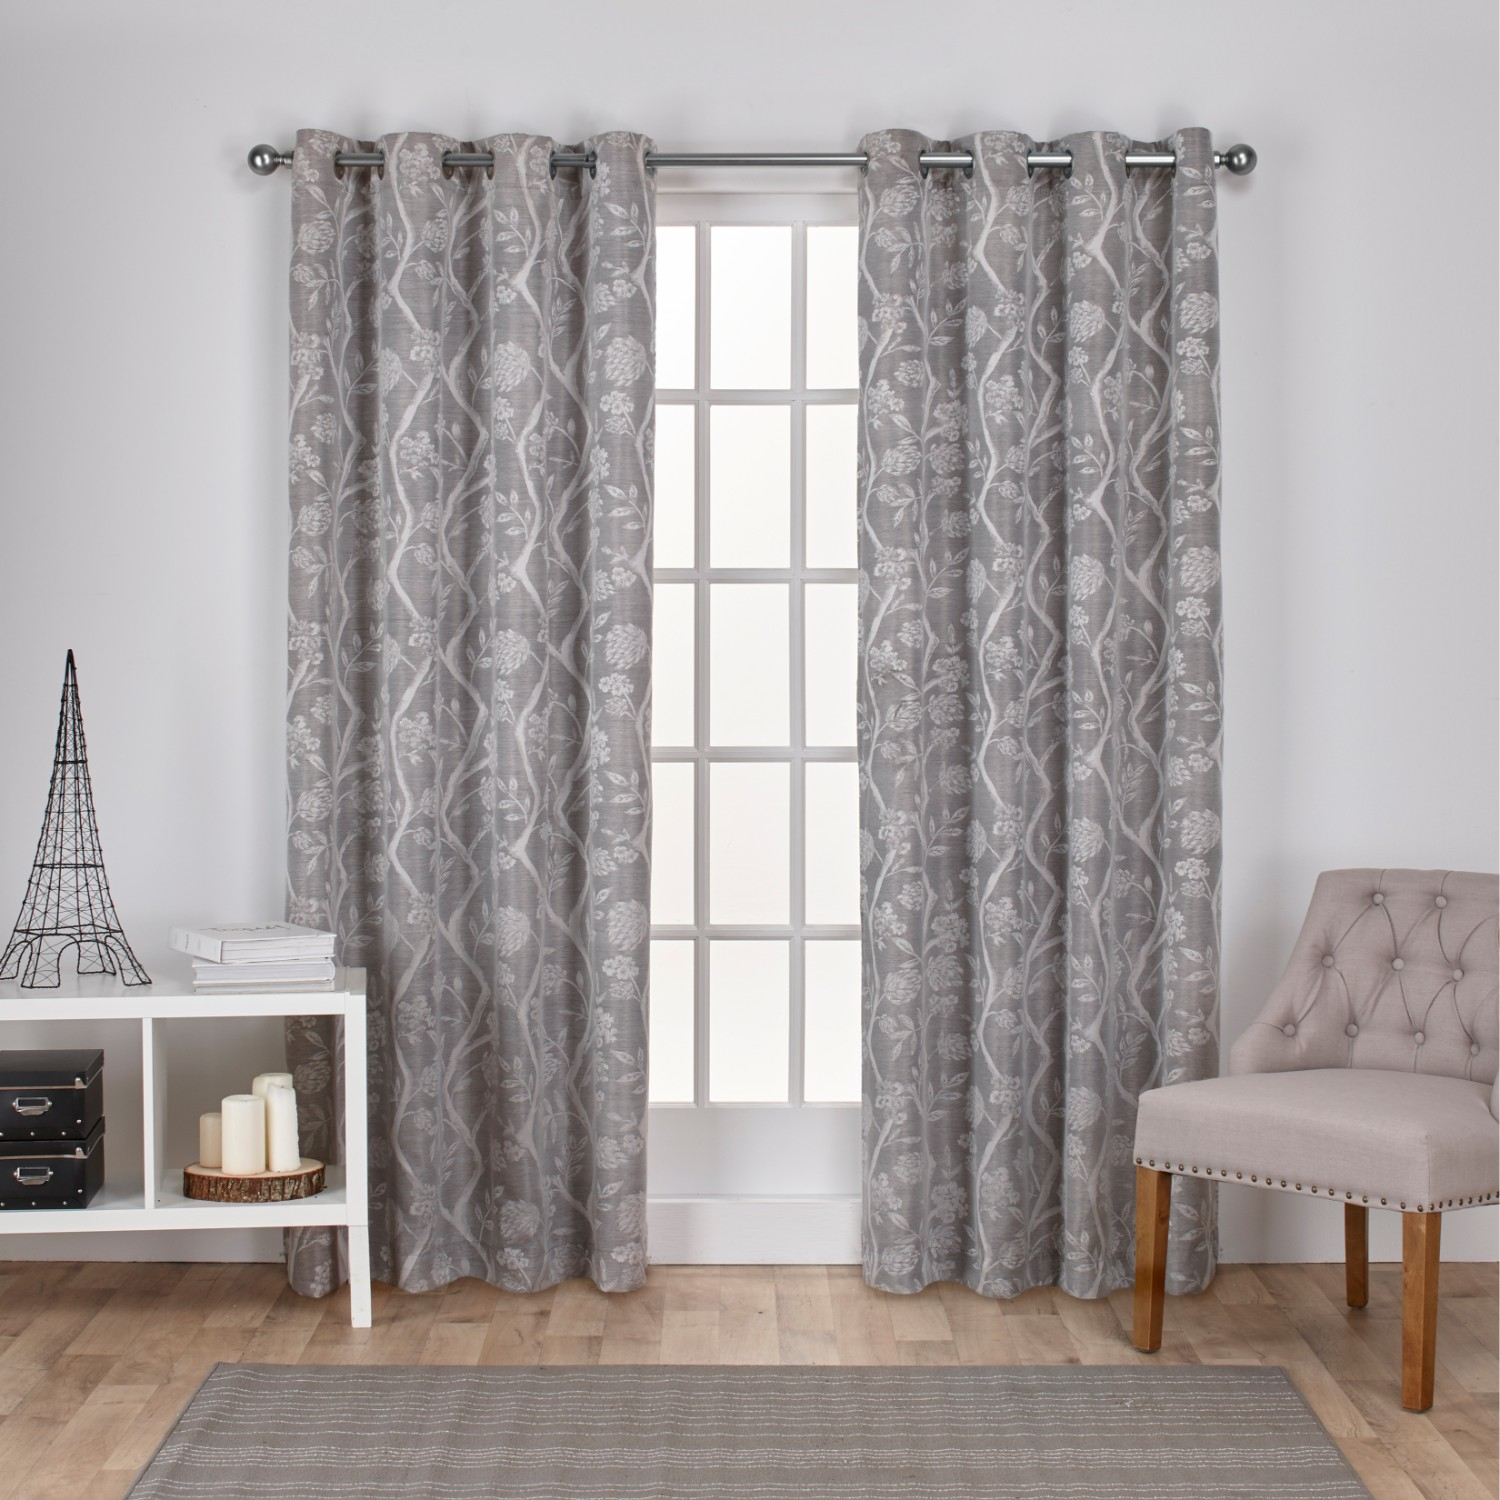 Exclusive Home Lamont Jacquard Window Curtain Panel Pair with Grommet Top